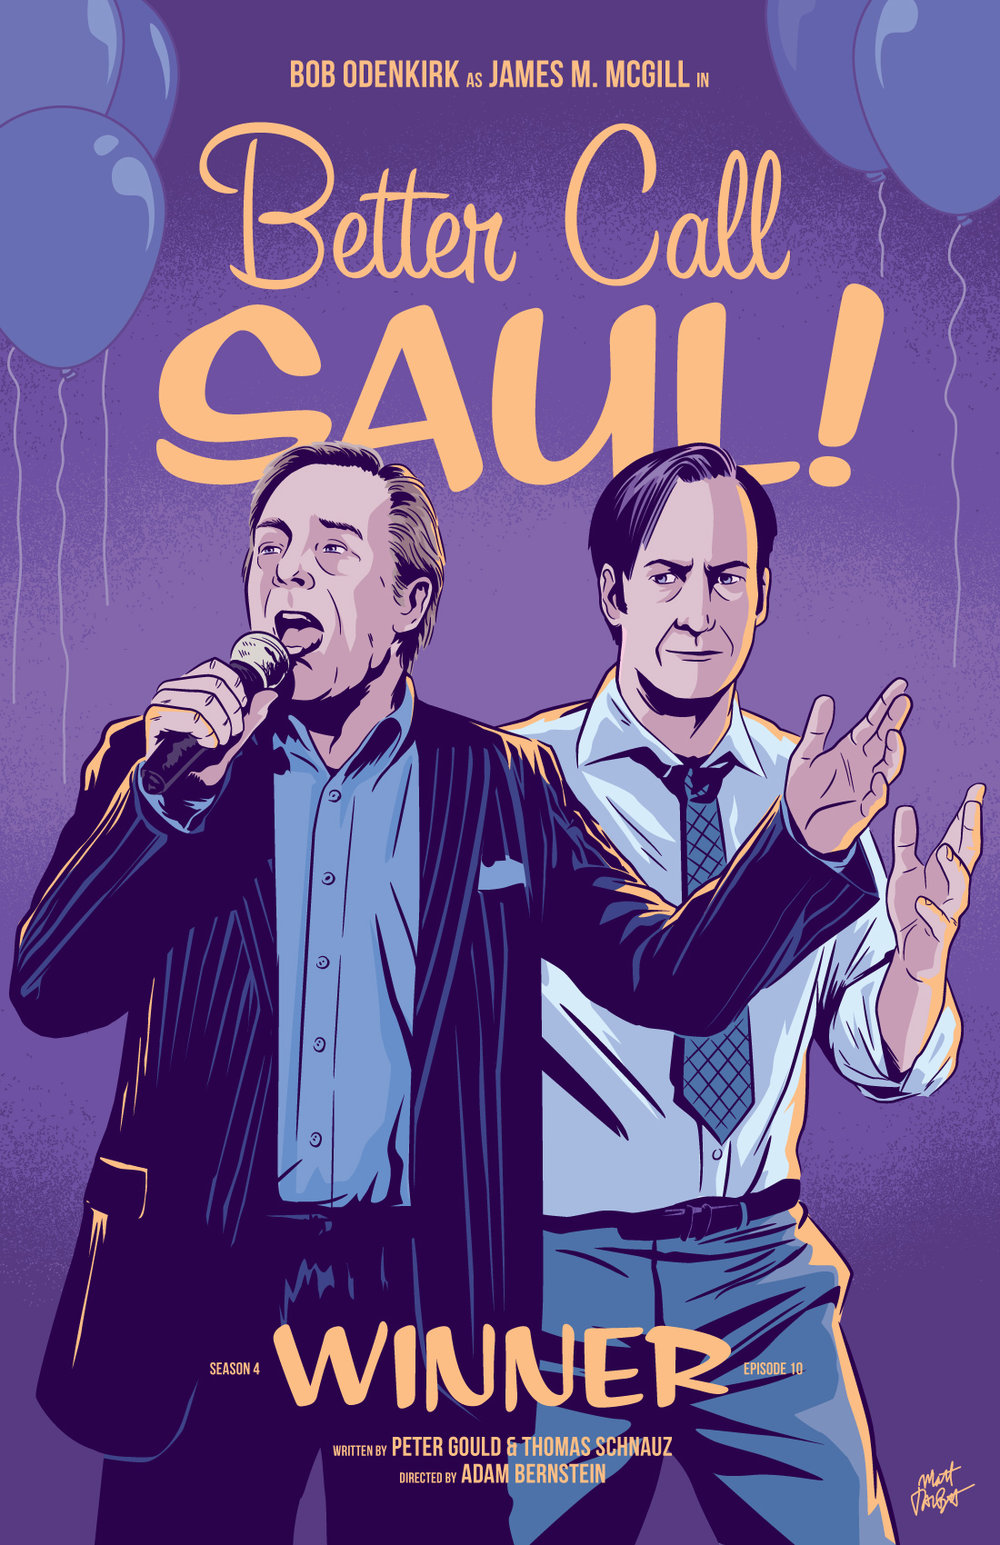 Better-Call-Saul-410-poster-by-matt-talb